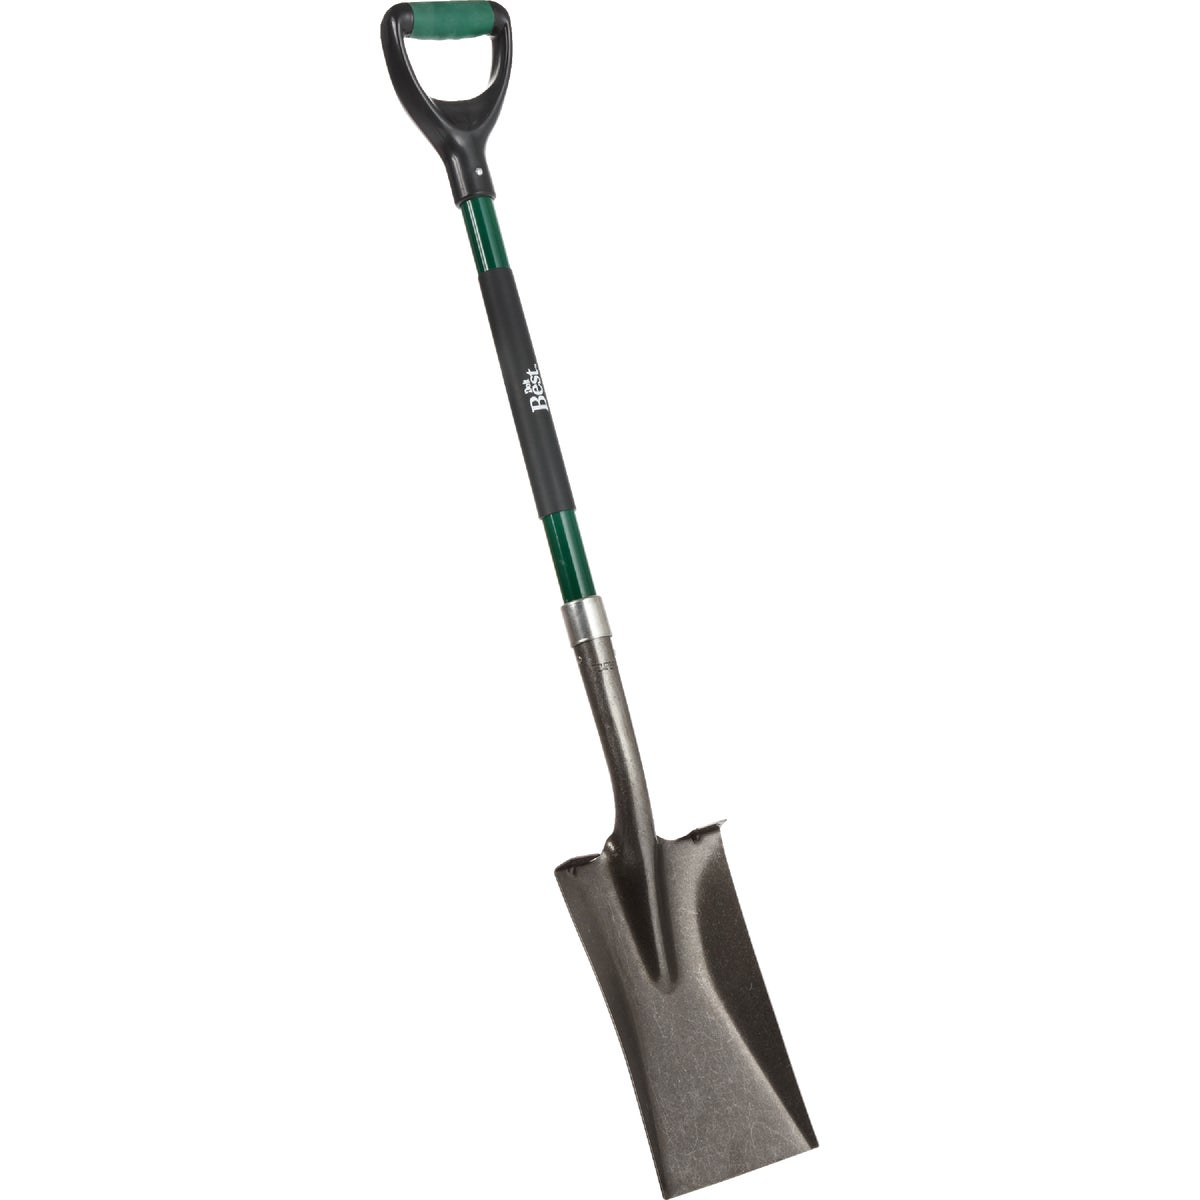 D-HDL GARDEN SPADE - YN-8SF2-7-3FD by Do it Best